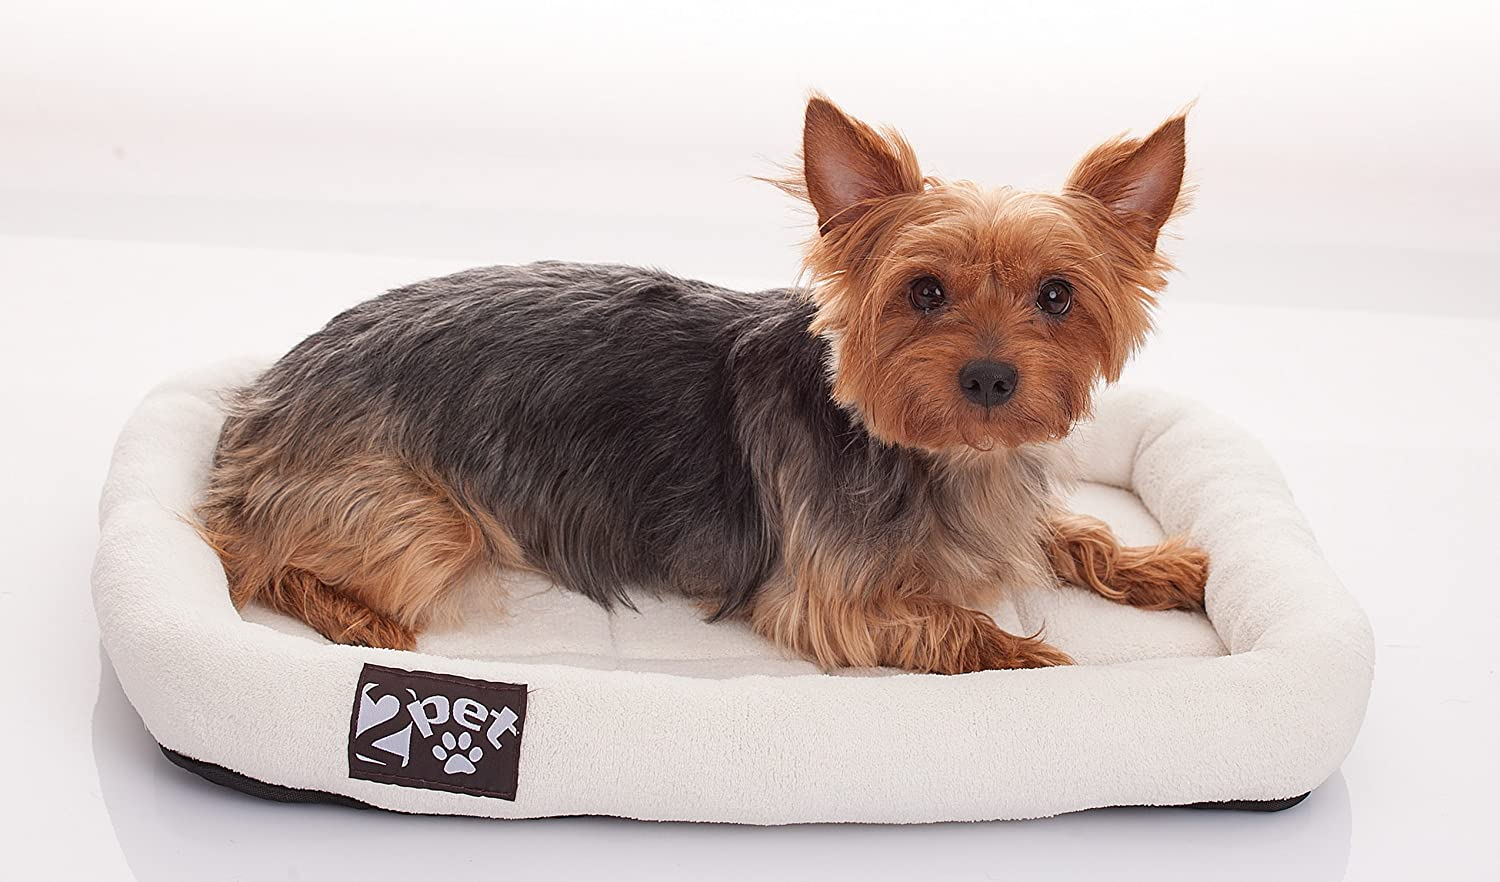 2PET Cushy Soft Fleece Pet Bed – All-Season Crate Pad for Your Pet's Comfort – Double Fleece Filling for Better Cushioning – Waterproof, Easy to Clean–Sturdy Border for Head Support-CPB1504